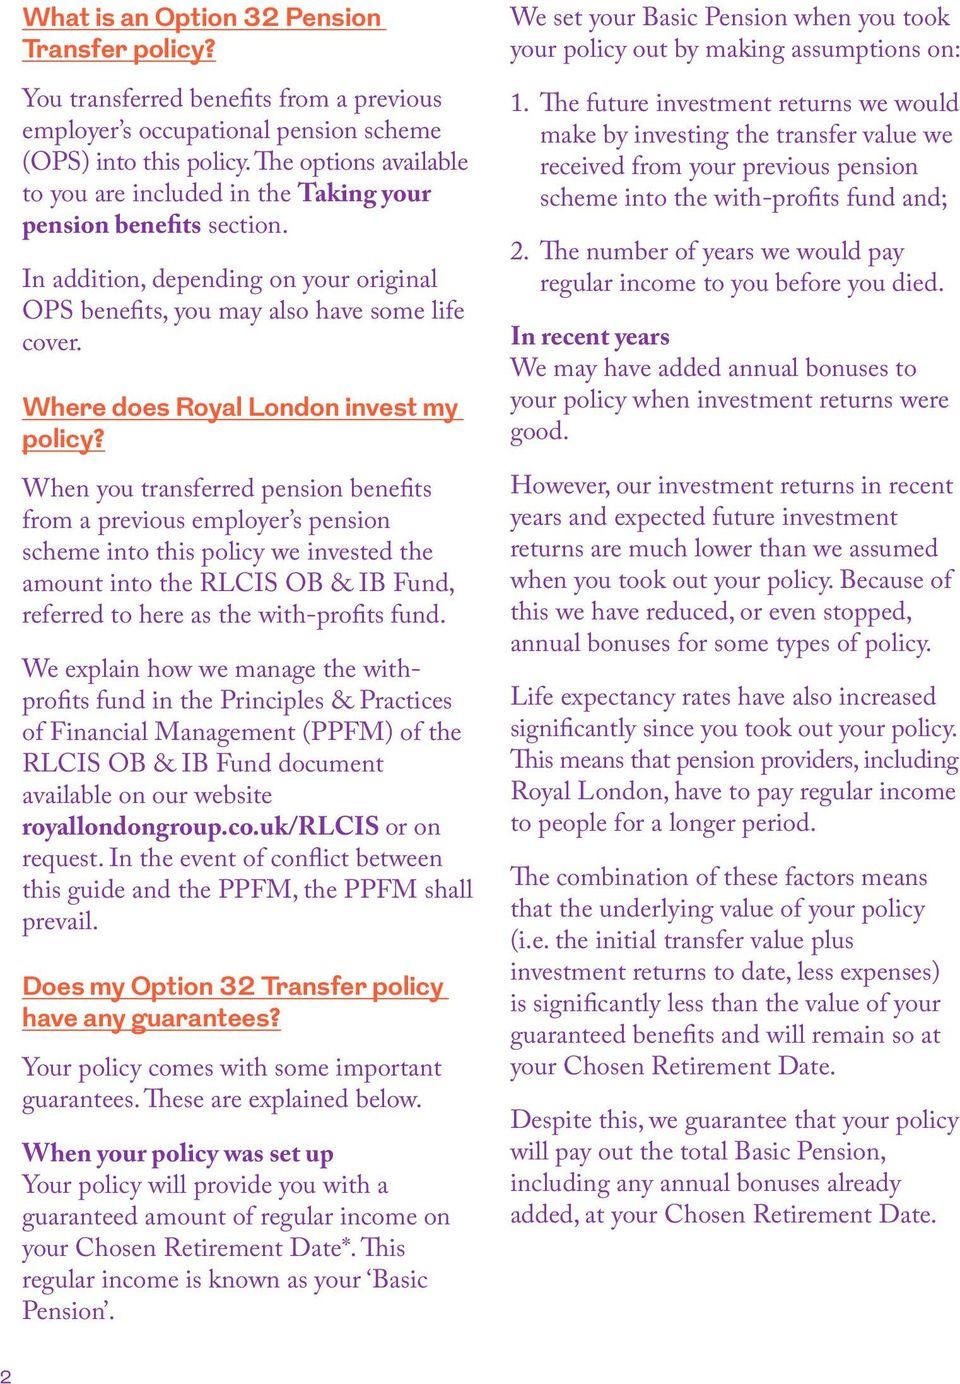 Where does Royal London invest my policy?